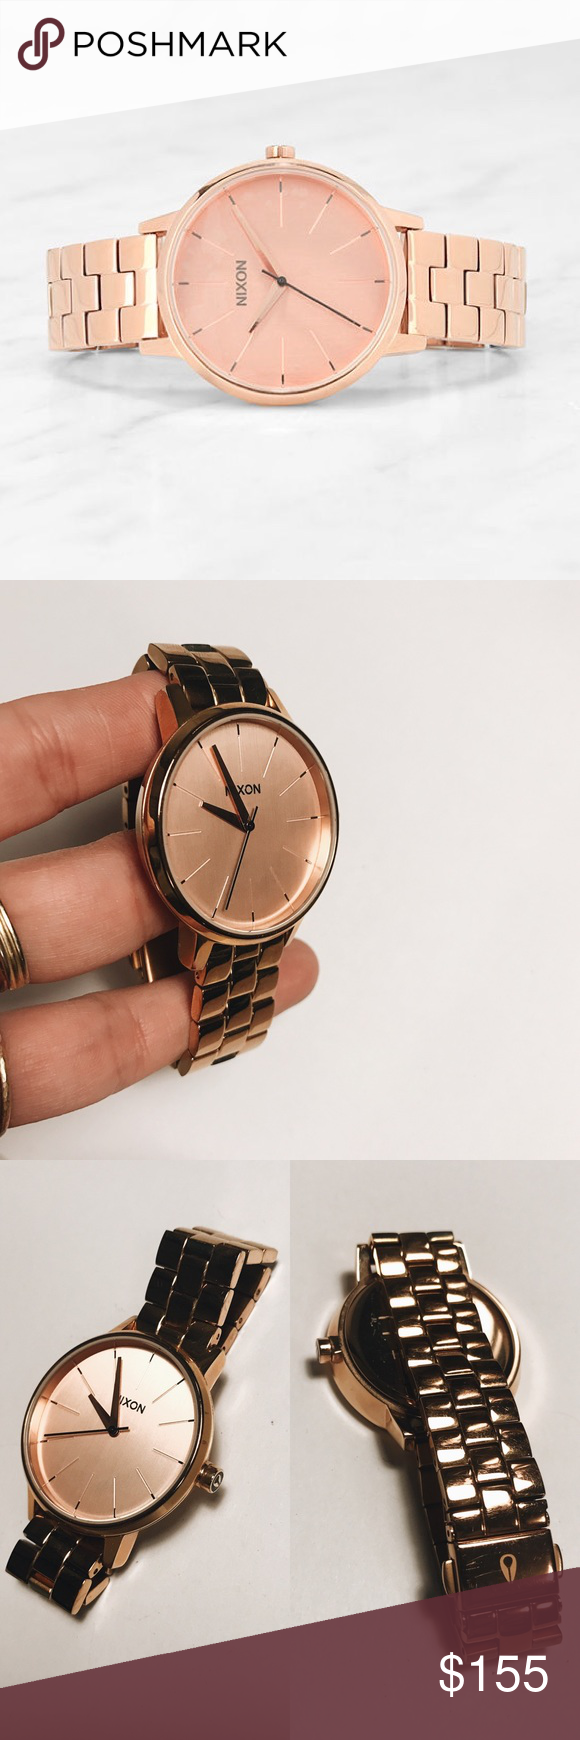 Nixon Kensington All Rose Gold Watch Worn a few times. Comes with entire packaging- see last photo. No scratches on the face itself, some light scratches around the band and on the back of watch. Reference pictures. Not noticeable unless very closely inspected. Overall in excellent condition.  Classic 37mm case size in a clean look that's suitable for any setting. 3-hand movement with understated contemporary charm. More slender 16mm, 3-link band for wide-ranging appeal with a stainless…